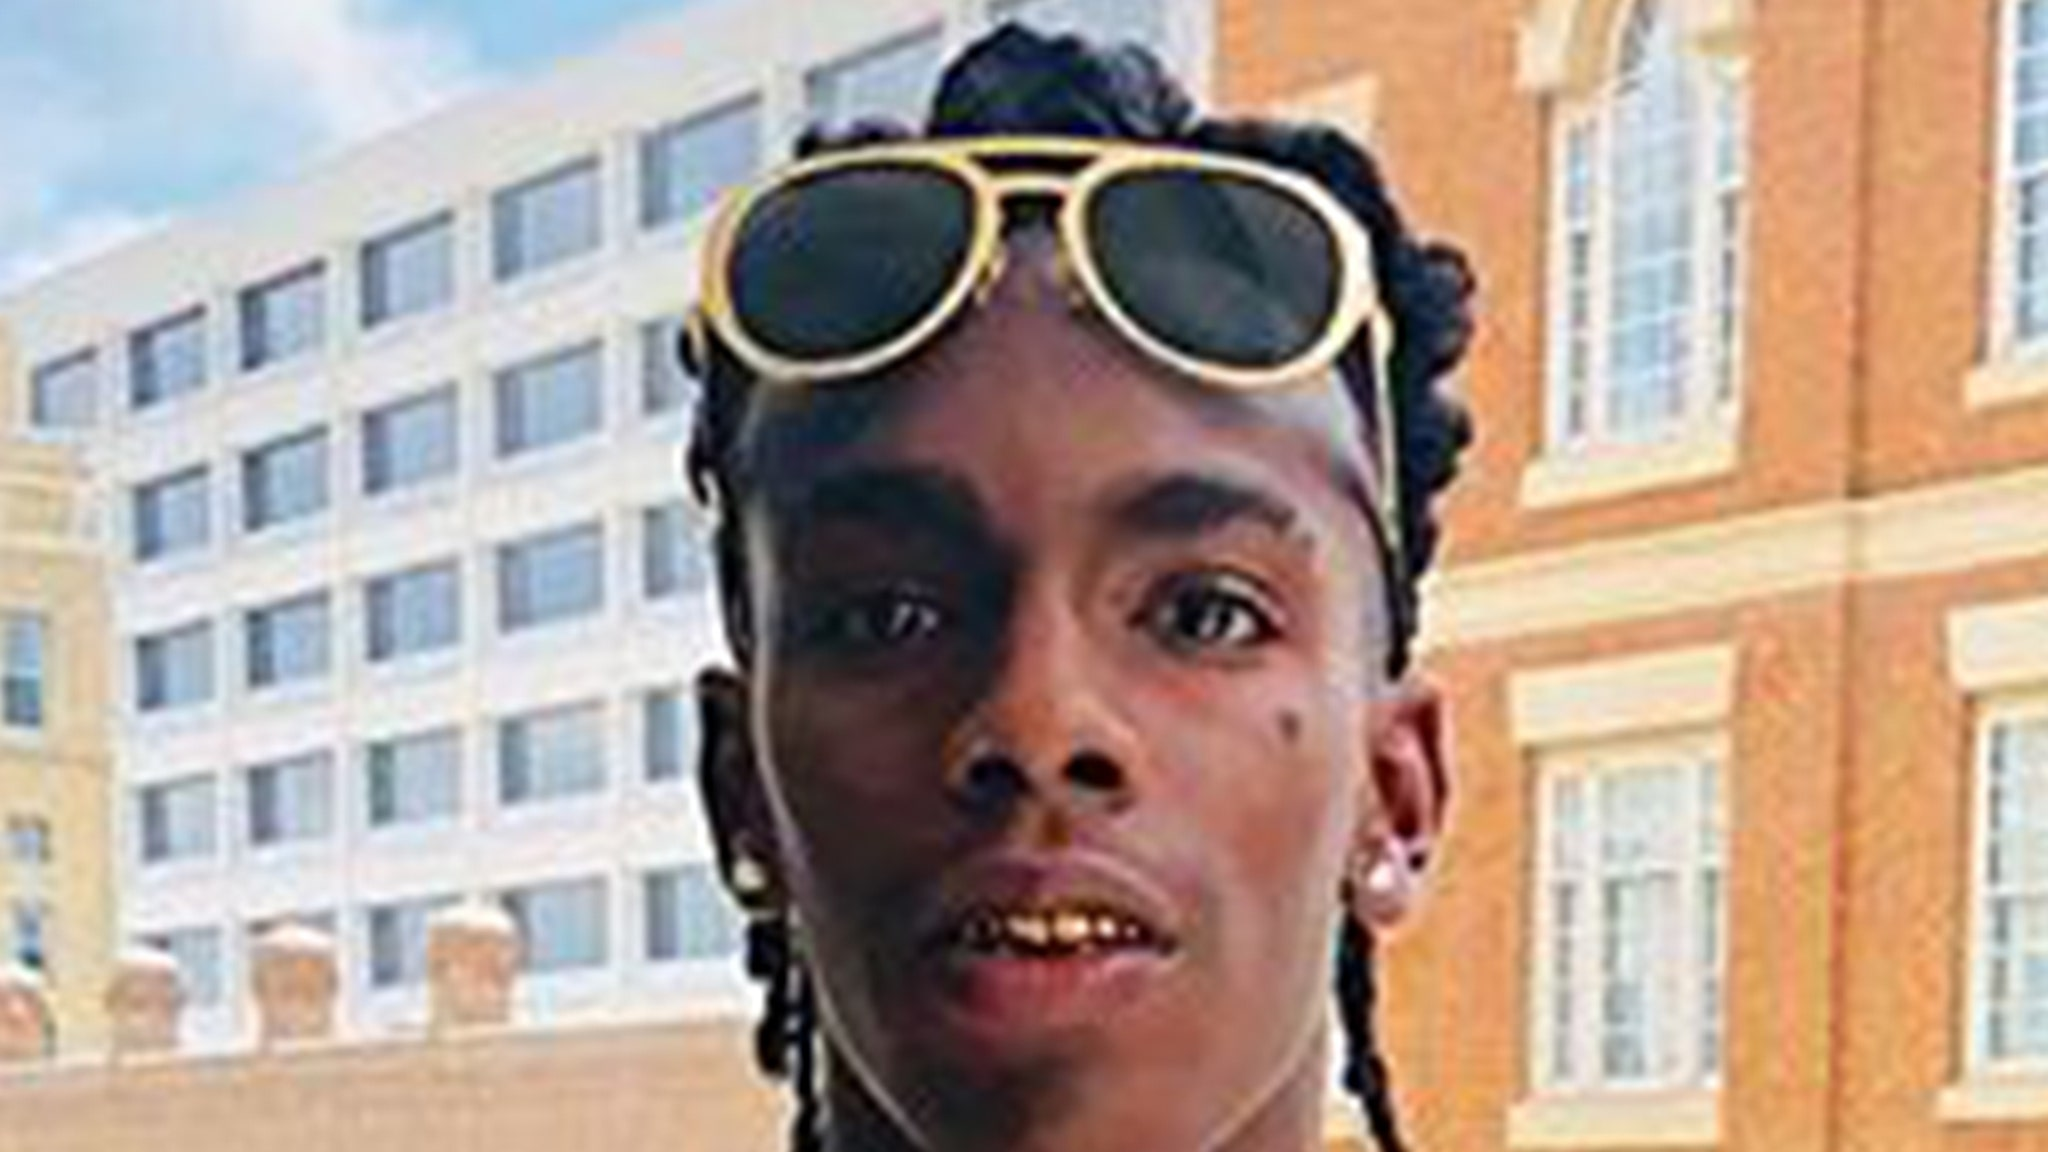 YNW Melly Denied Prison Release Despite Having COVID-19 - TMZ